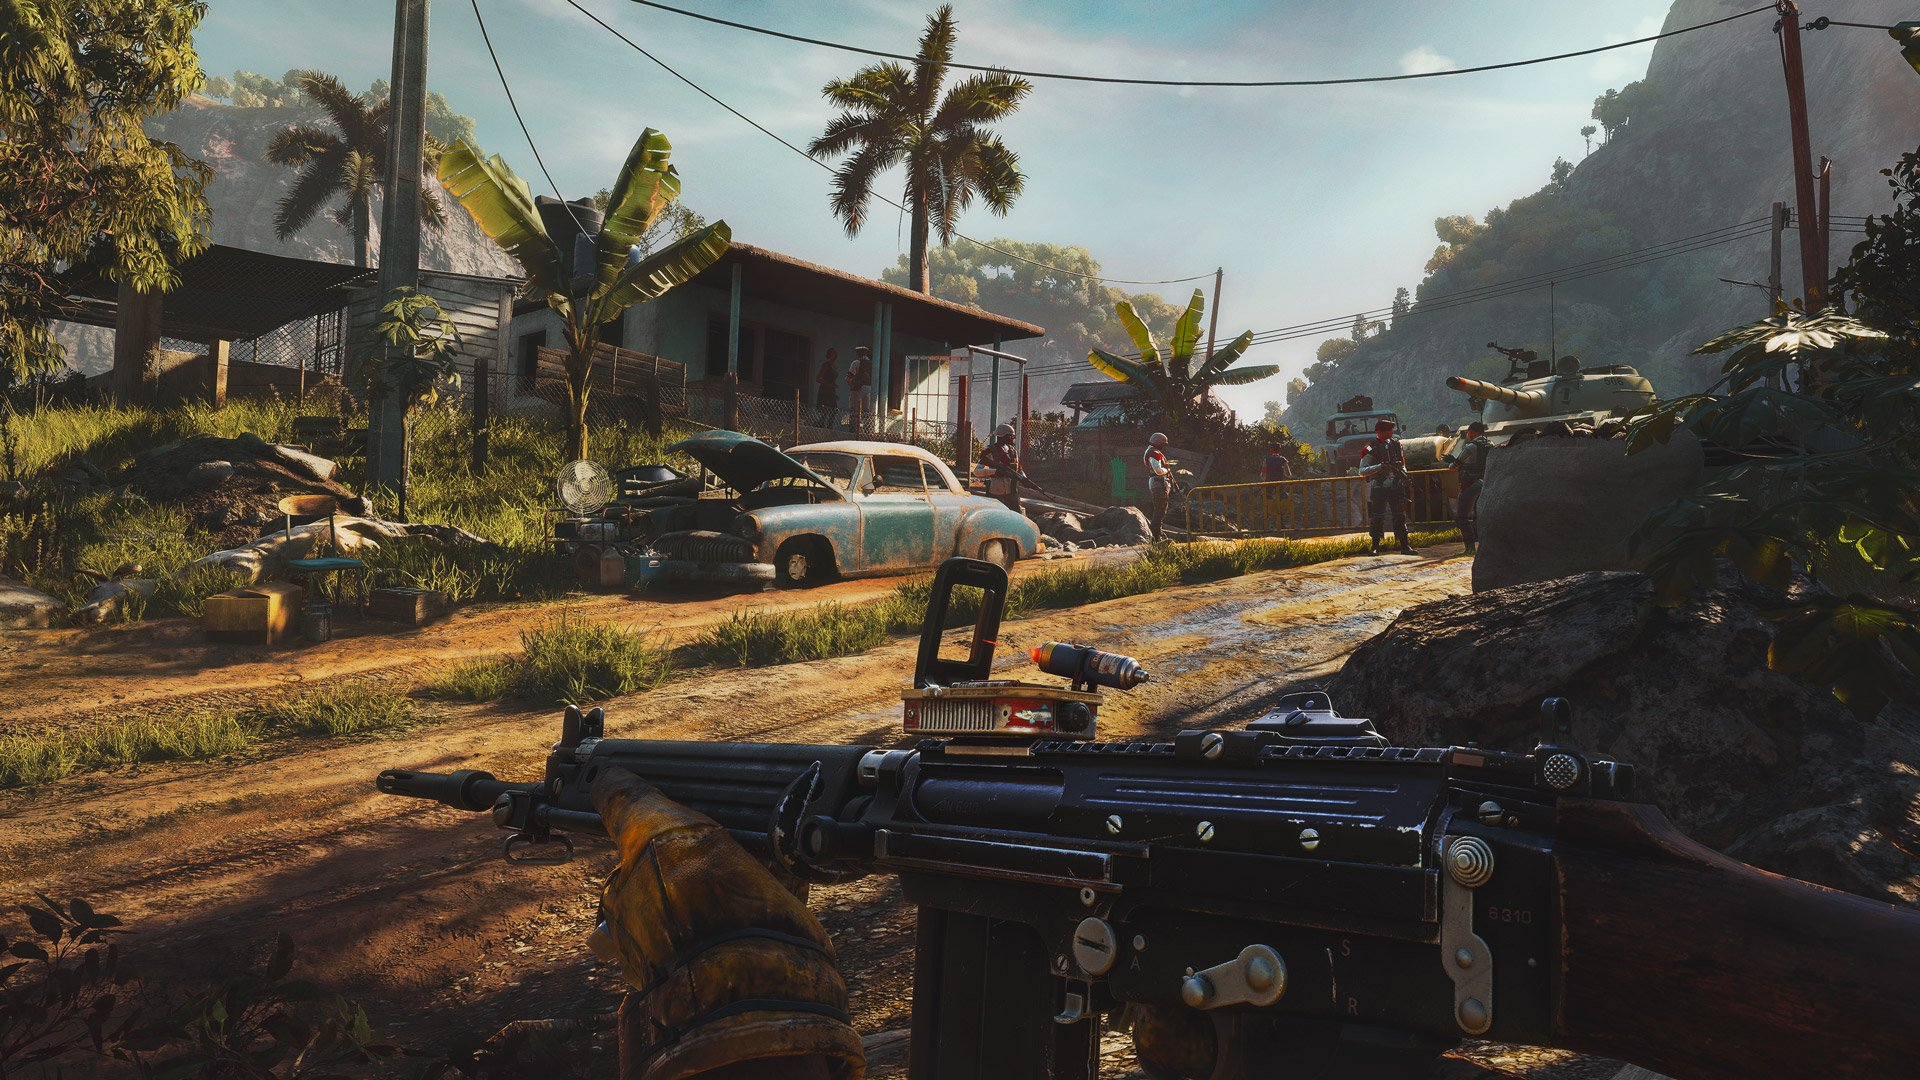 How To Get A Job As A Narrative Director Gamesindustry Biz Far cry 6 freedom hands chains